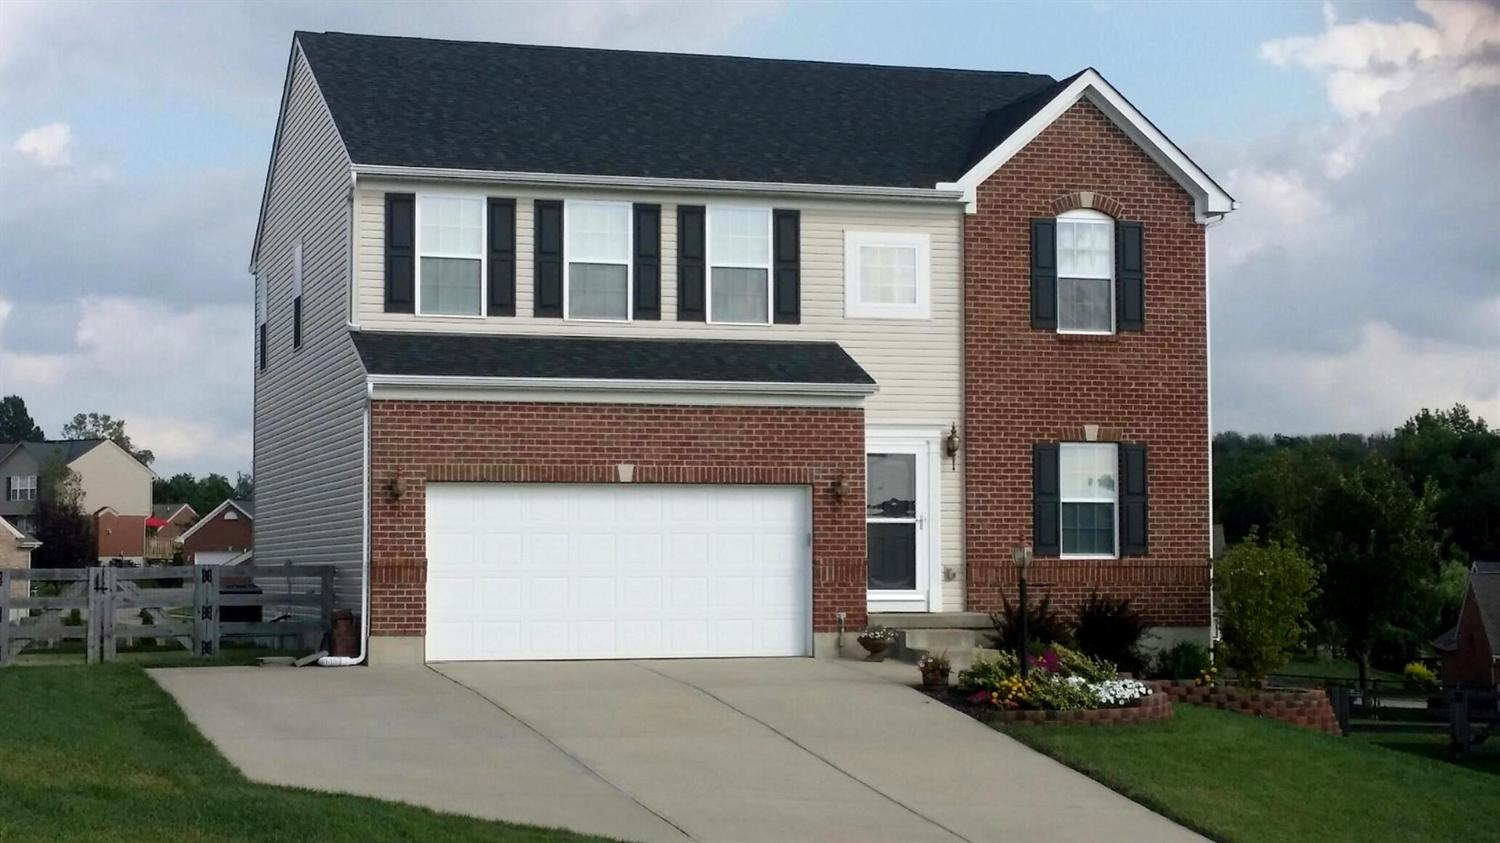 Photo 1 for 10509 Bristow Lakes Dr Independence, KY 41051